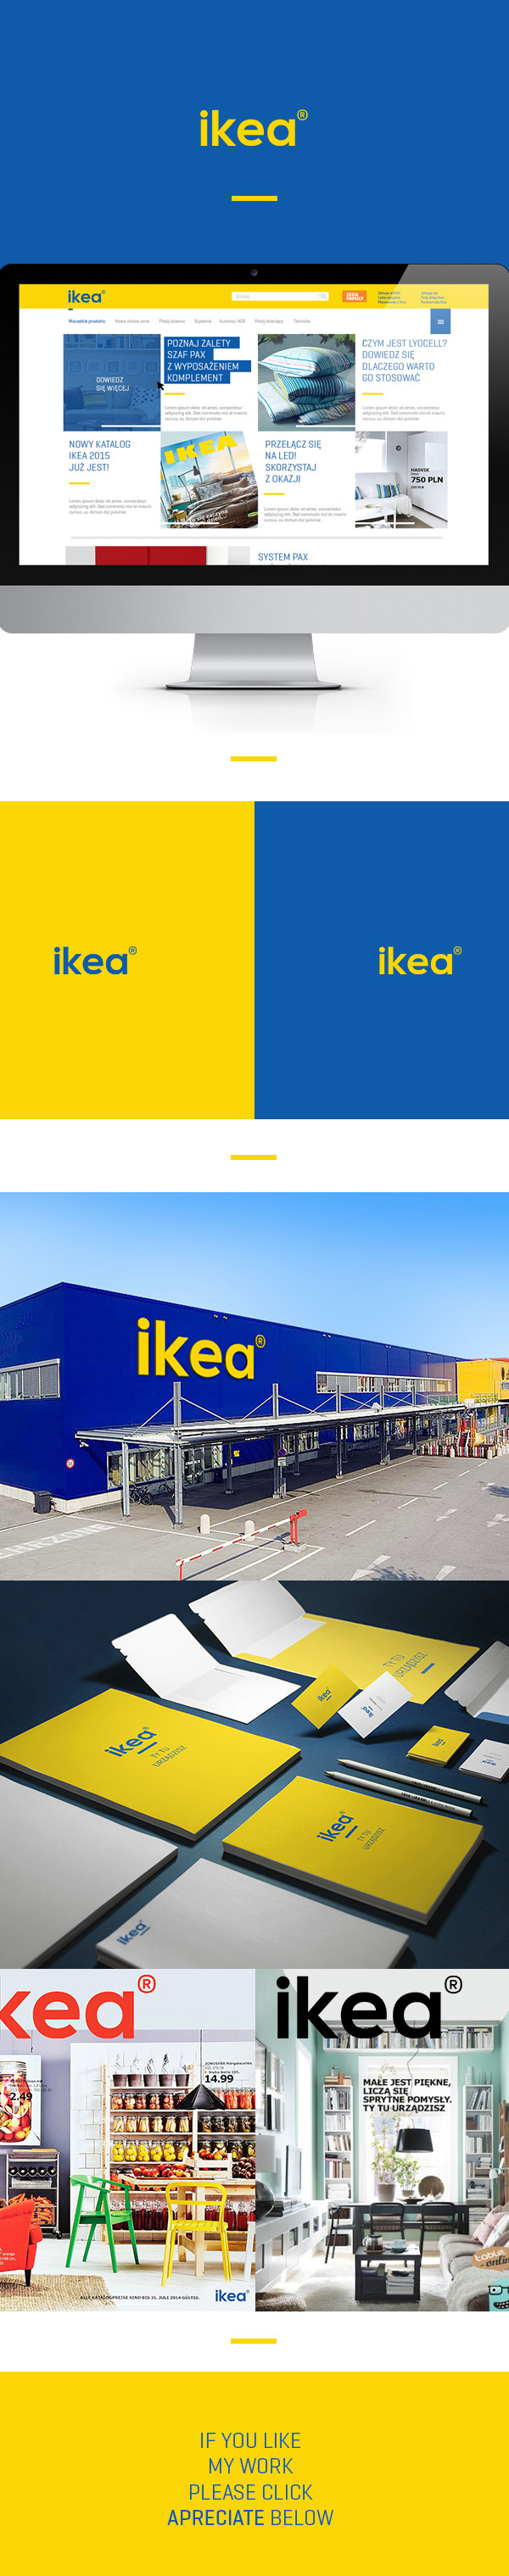 Ikea redesign concept on behance for Concept ikea